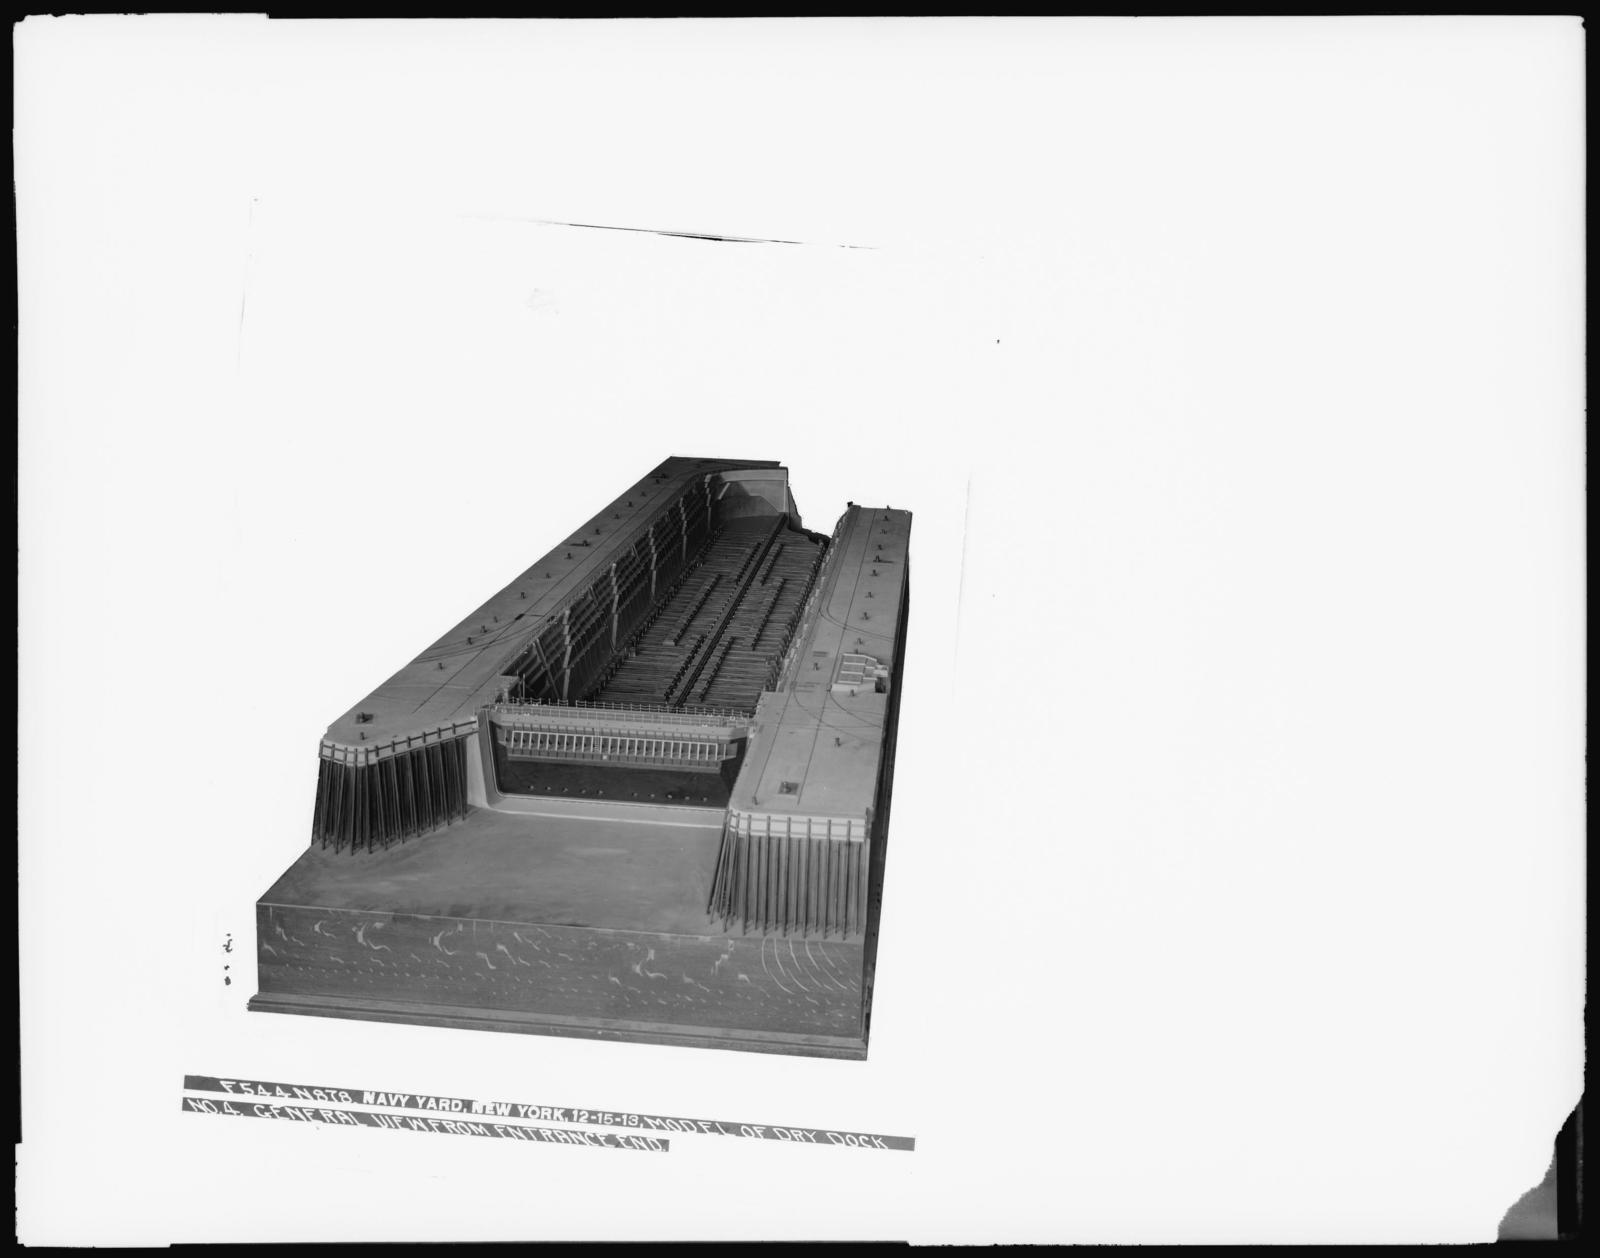 Model or Dry Dock Number 4, General View from Entrance End